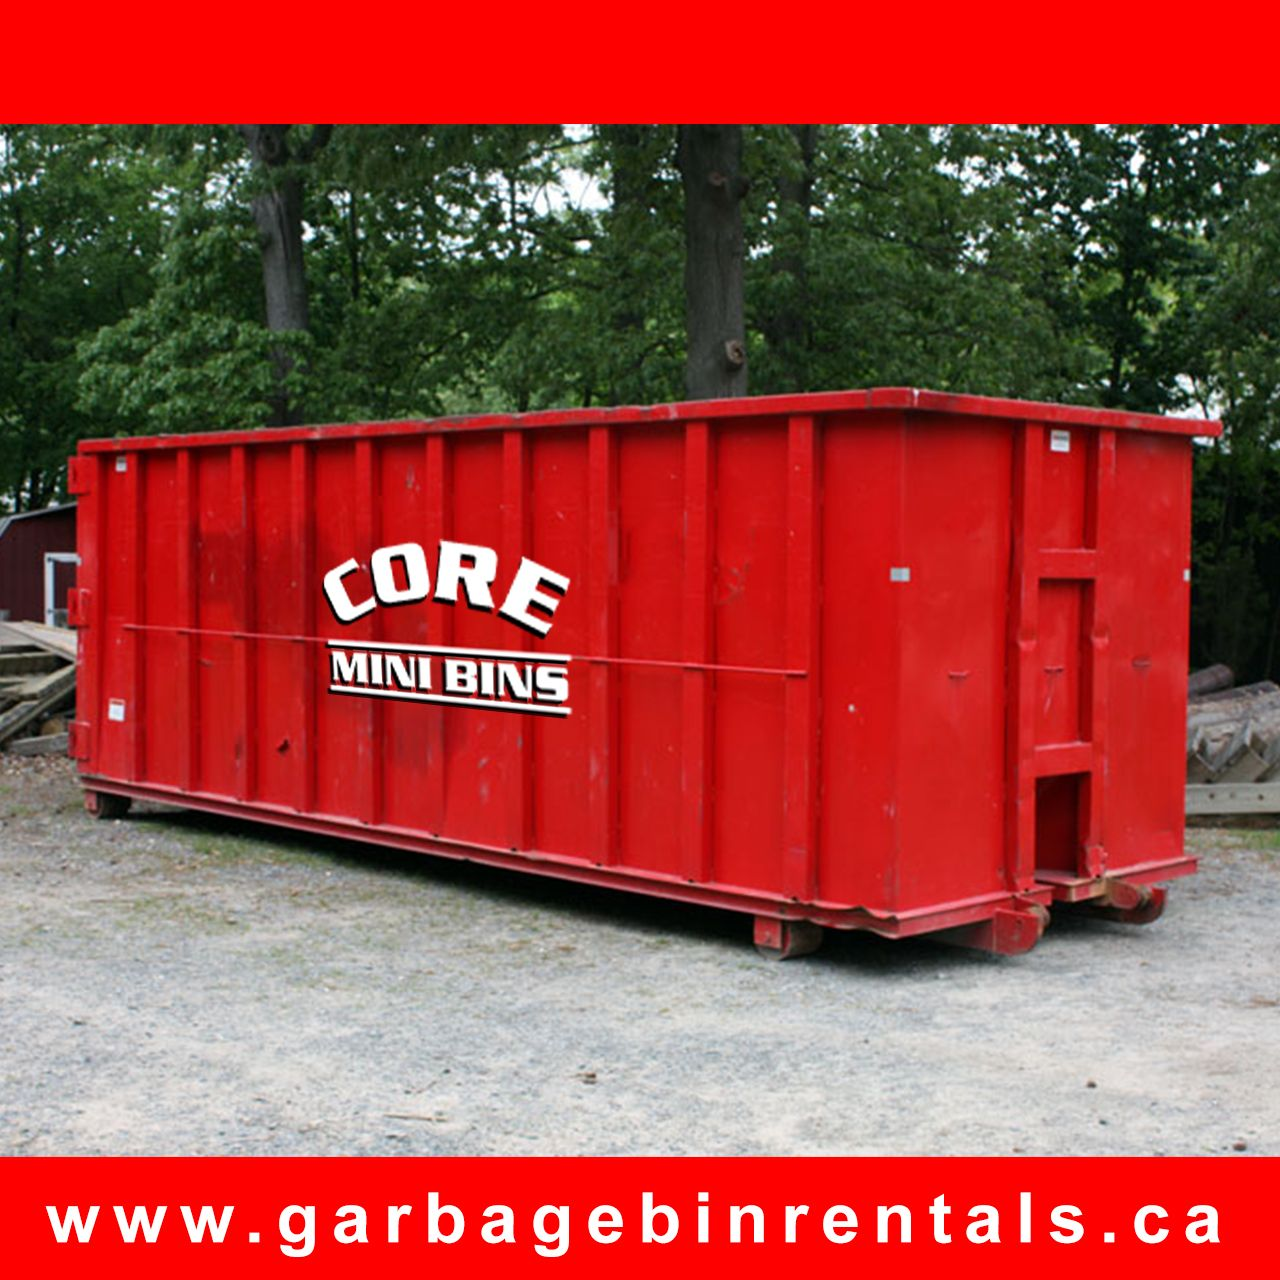 At Core Mini Bins We Offer A Wide Range Of Choices On 10 Yard Bins 14 Yard Bins 20 Yard Bins And 40 Yard Bins We Can Meet All Y Bins Demolition Wood Bridge